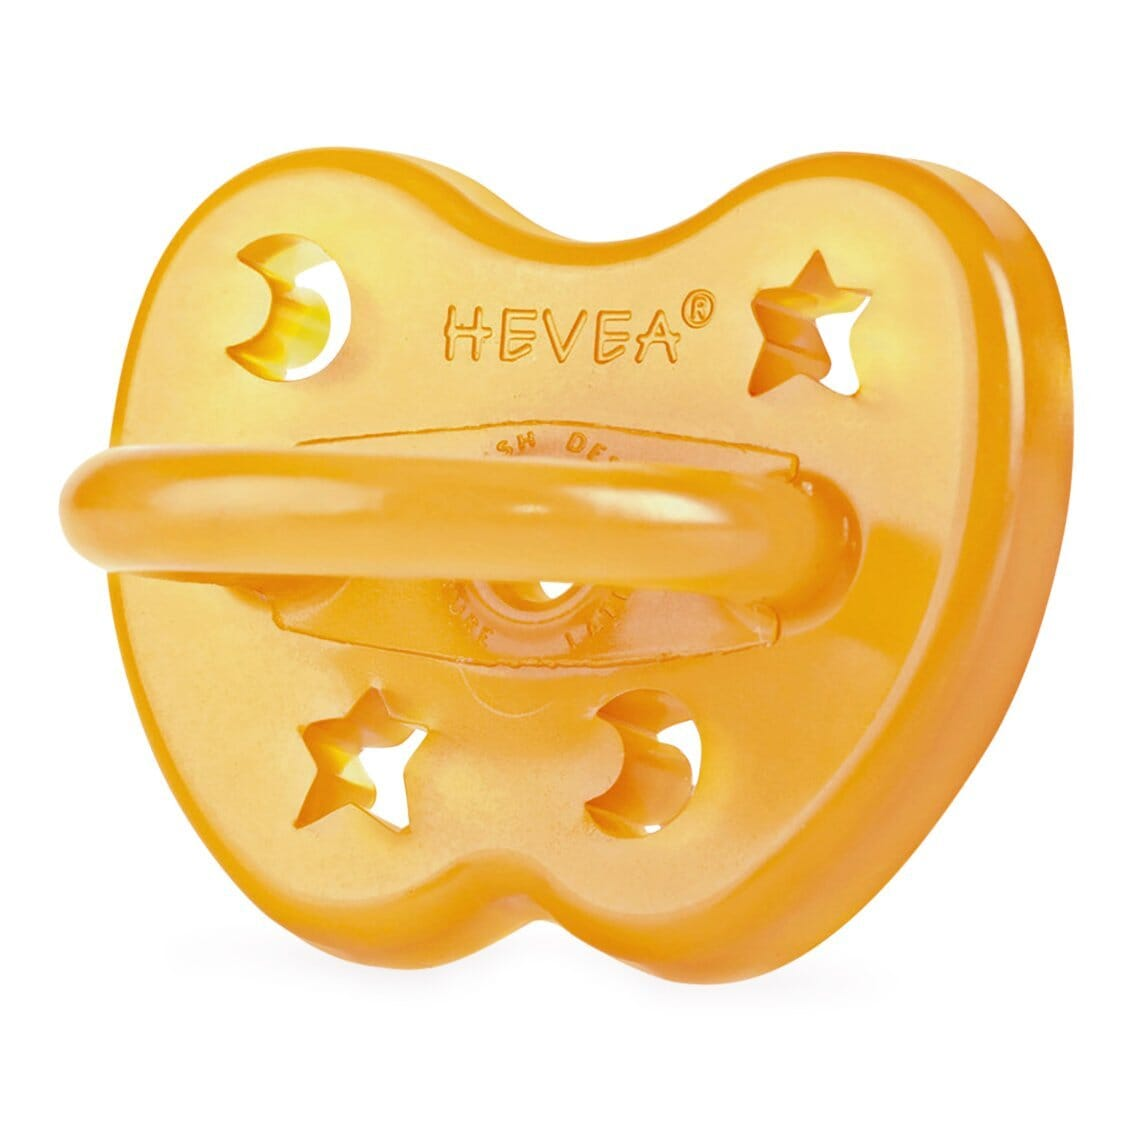 Hevea Classic Orthodontic Pacifier. 0-3 months